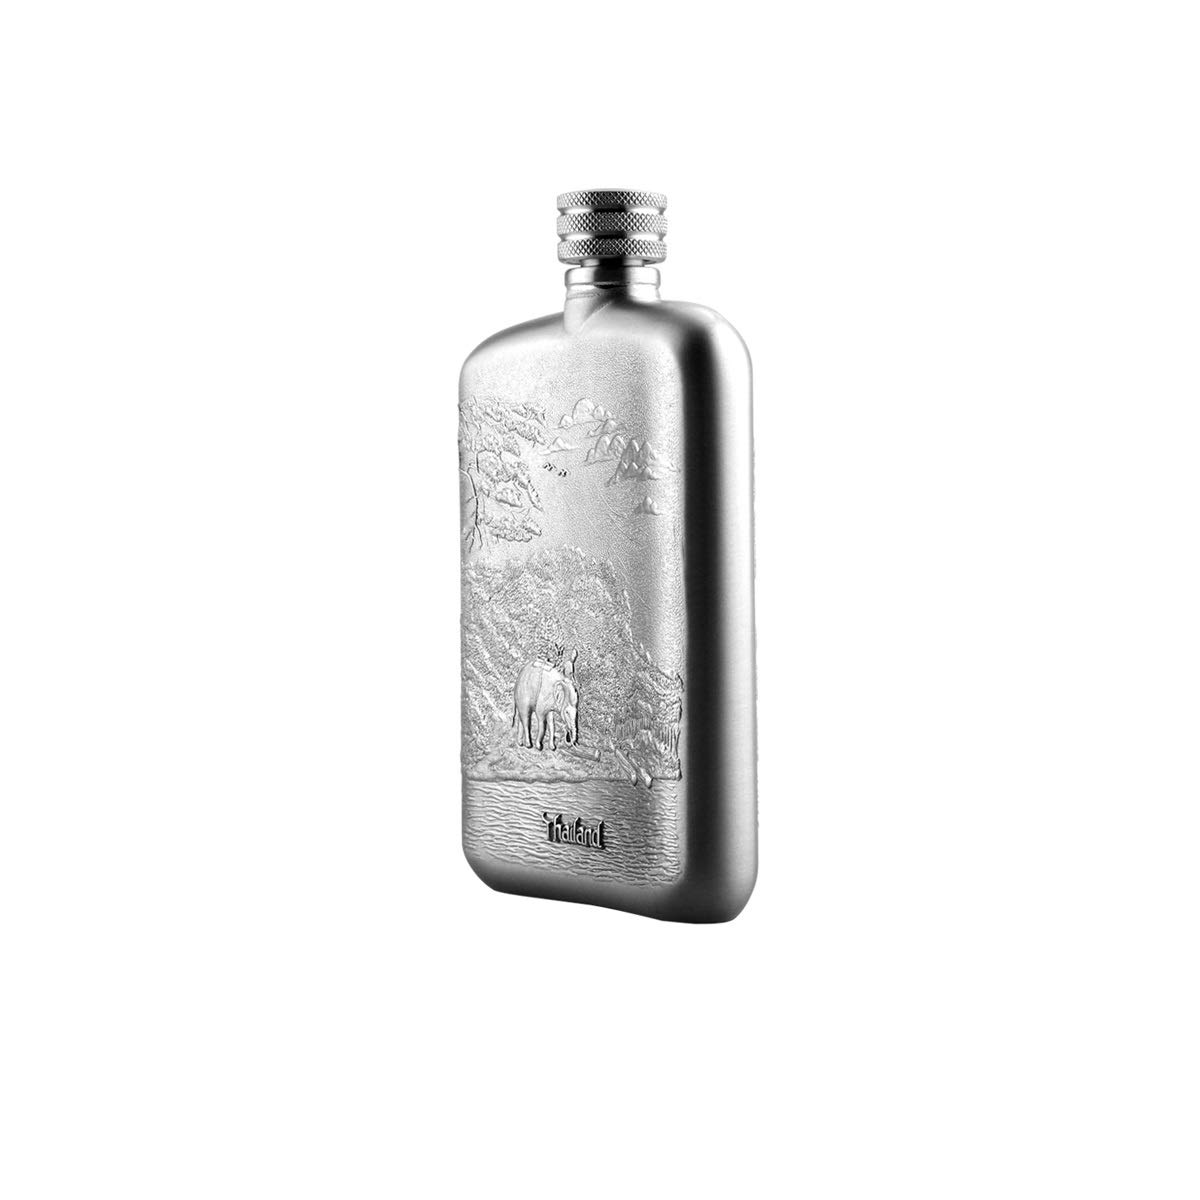 8haowenju Pure Tin, Carry A Small Hip Flask, Outdoor Portable 4 Ounce Hip Flask, Men's Jewelry Wine Gift, Send Friends, Send Brothers, Send Elders, Etc. Easy to Carry